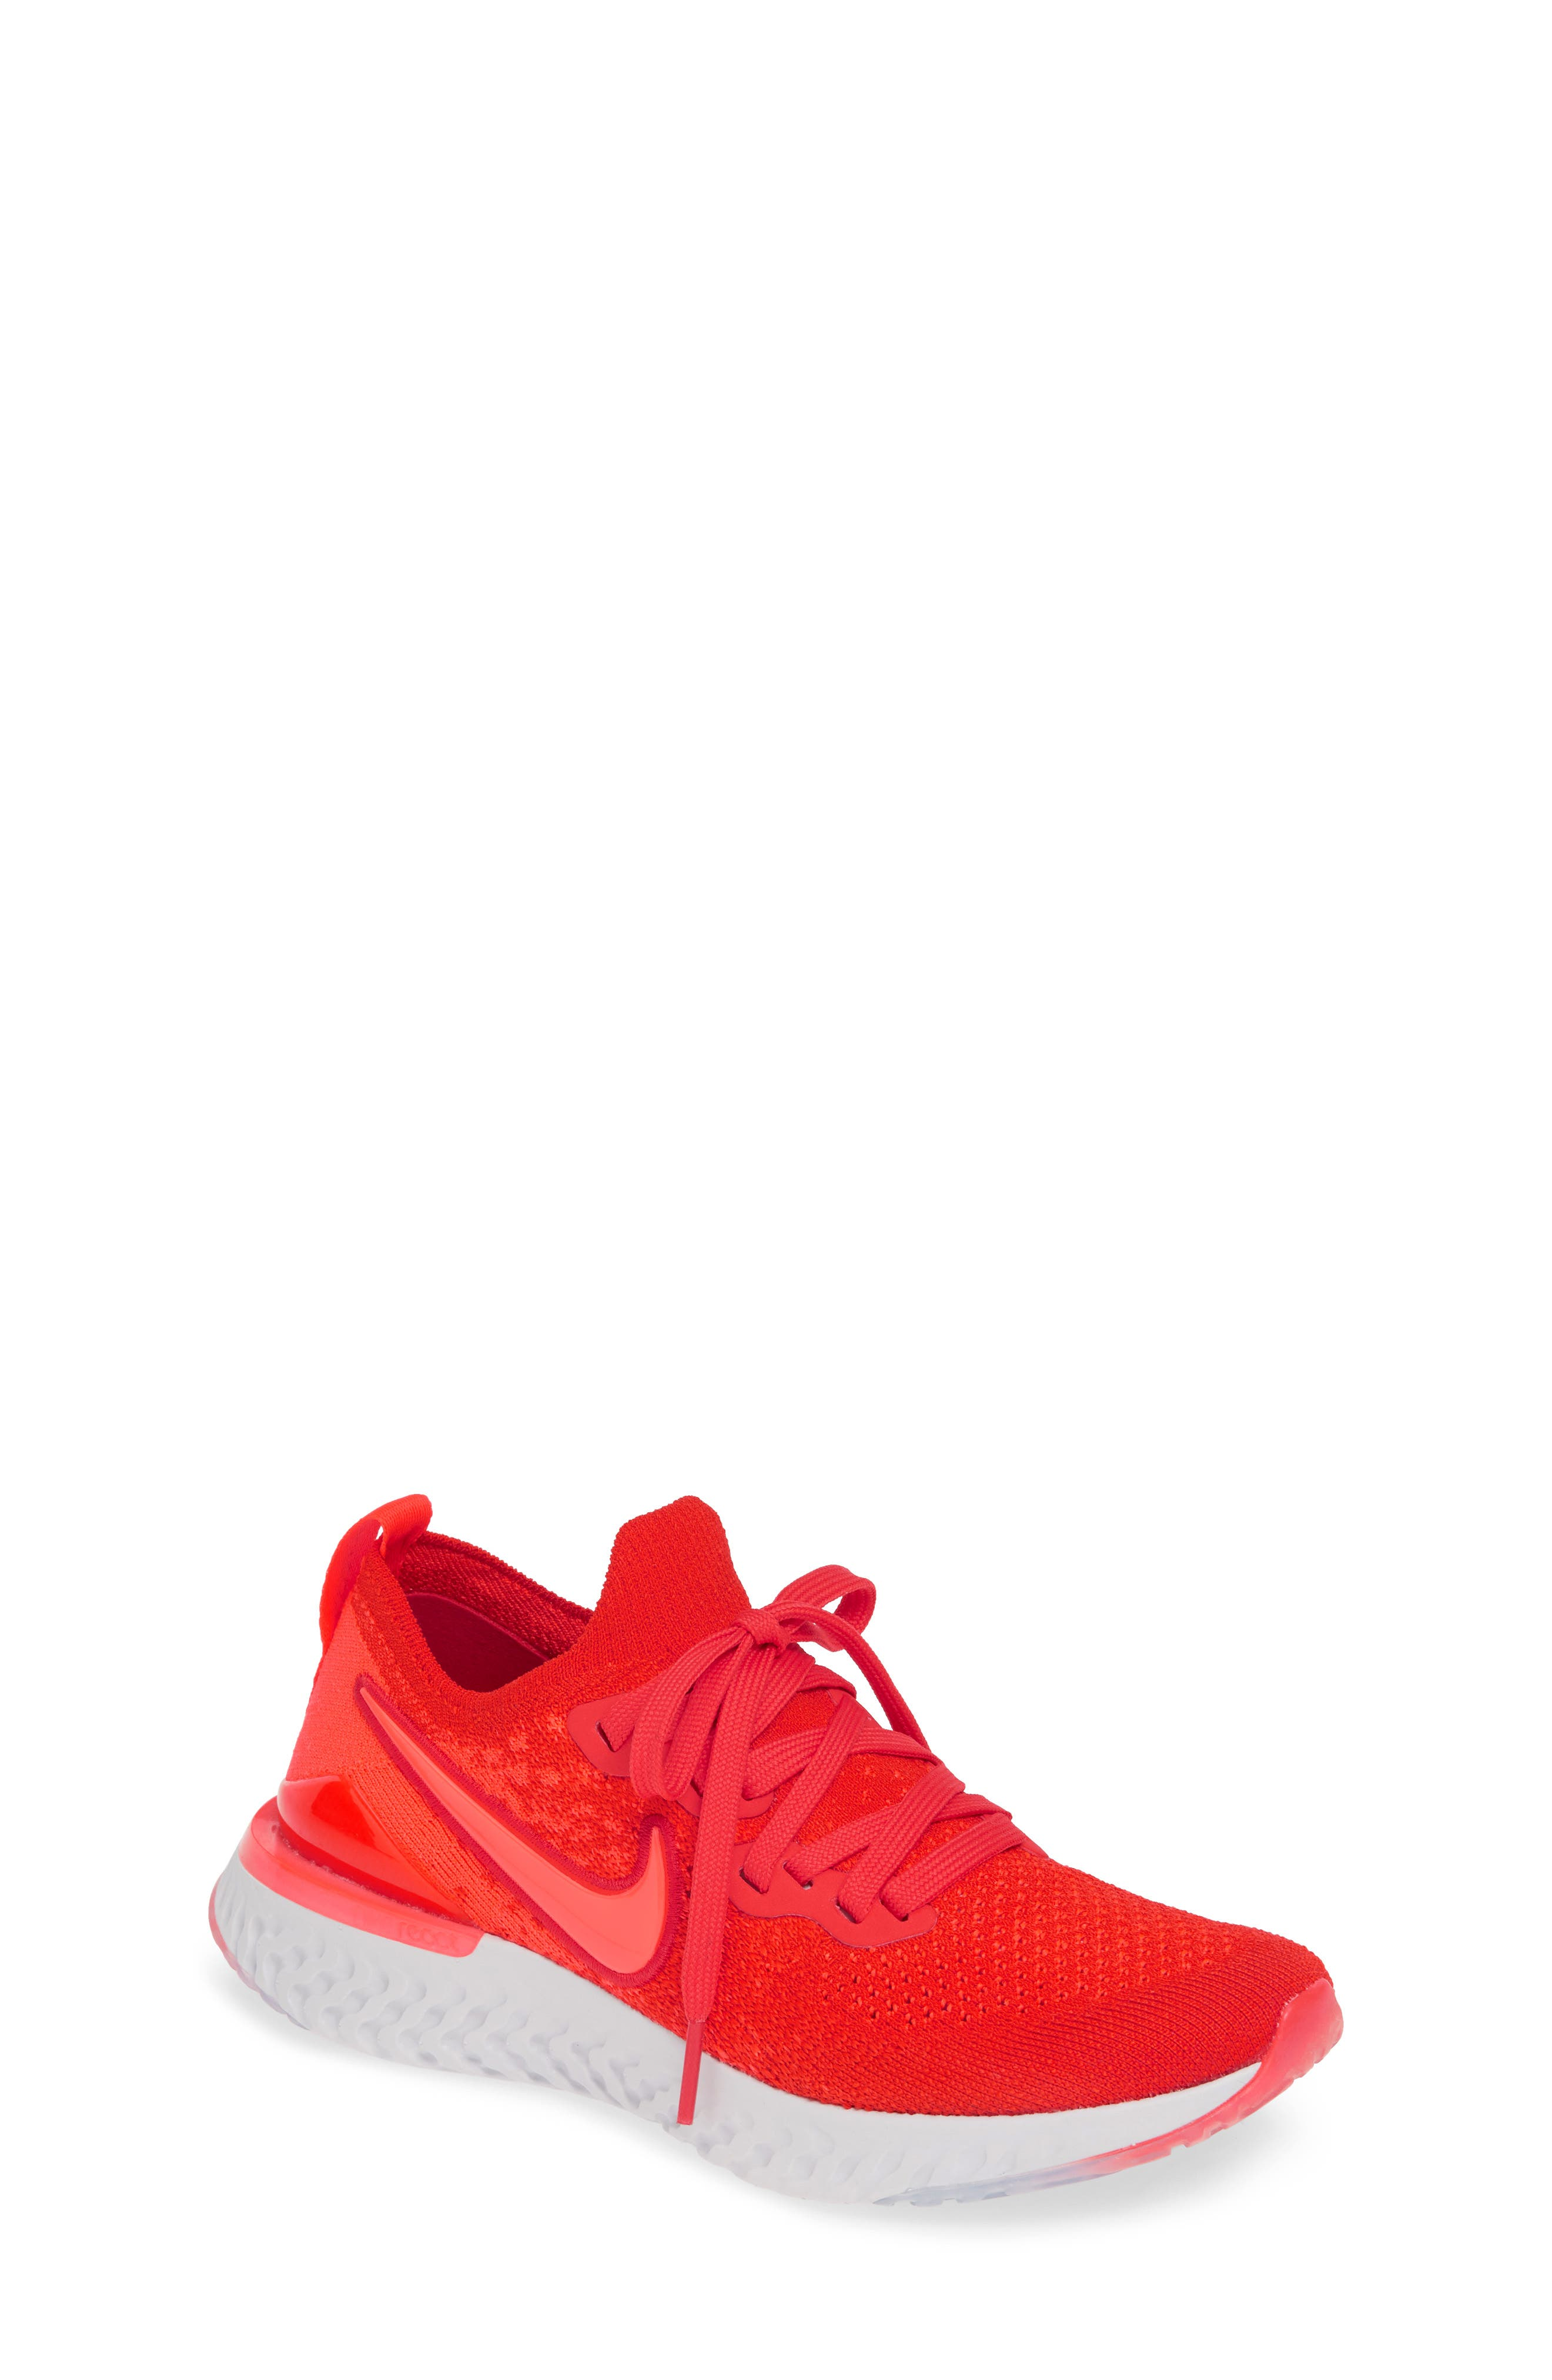 newest 40ad4 16672 All Nike   Nordstrom